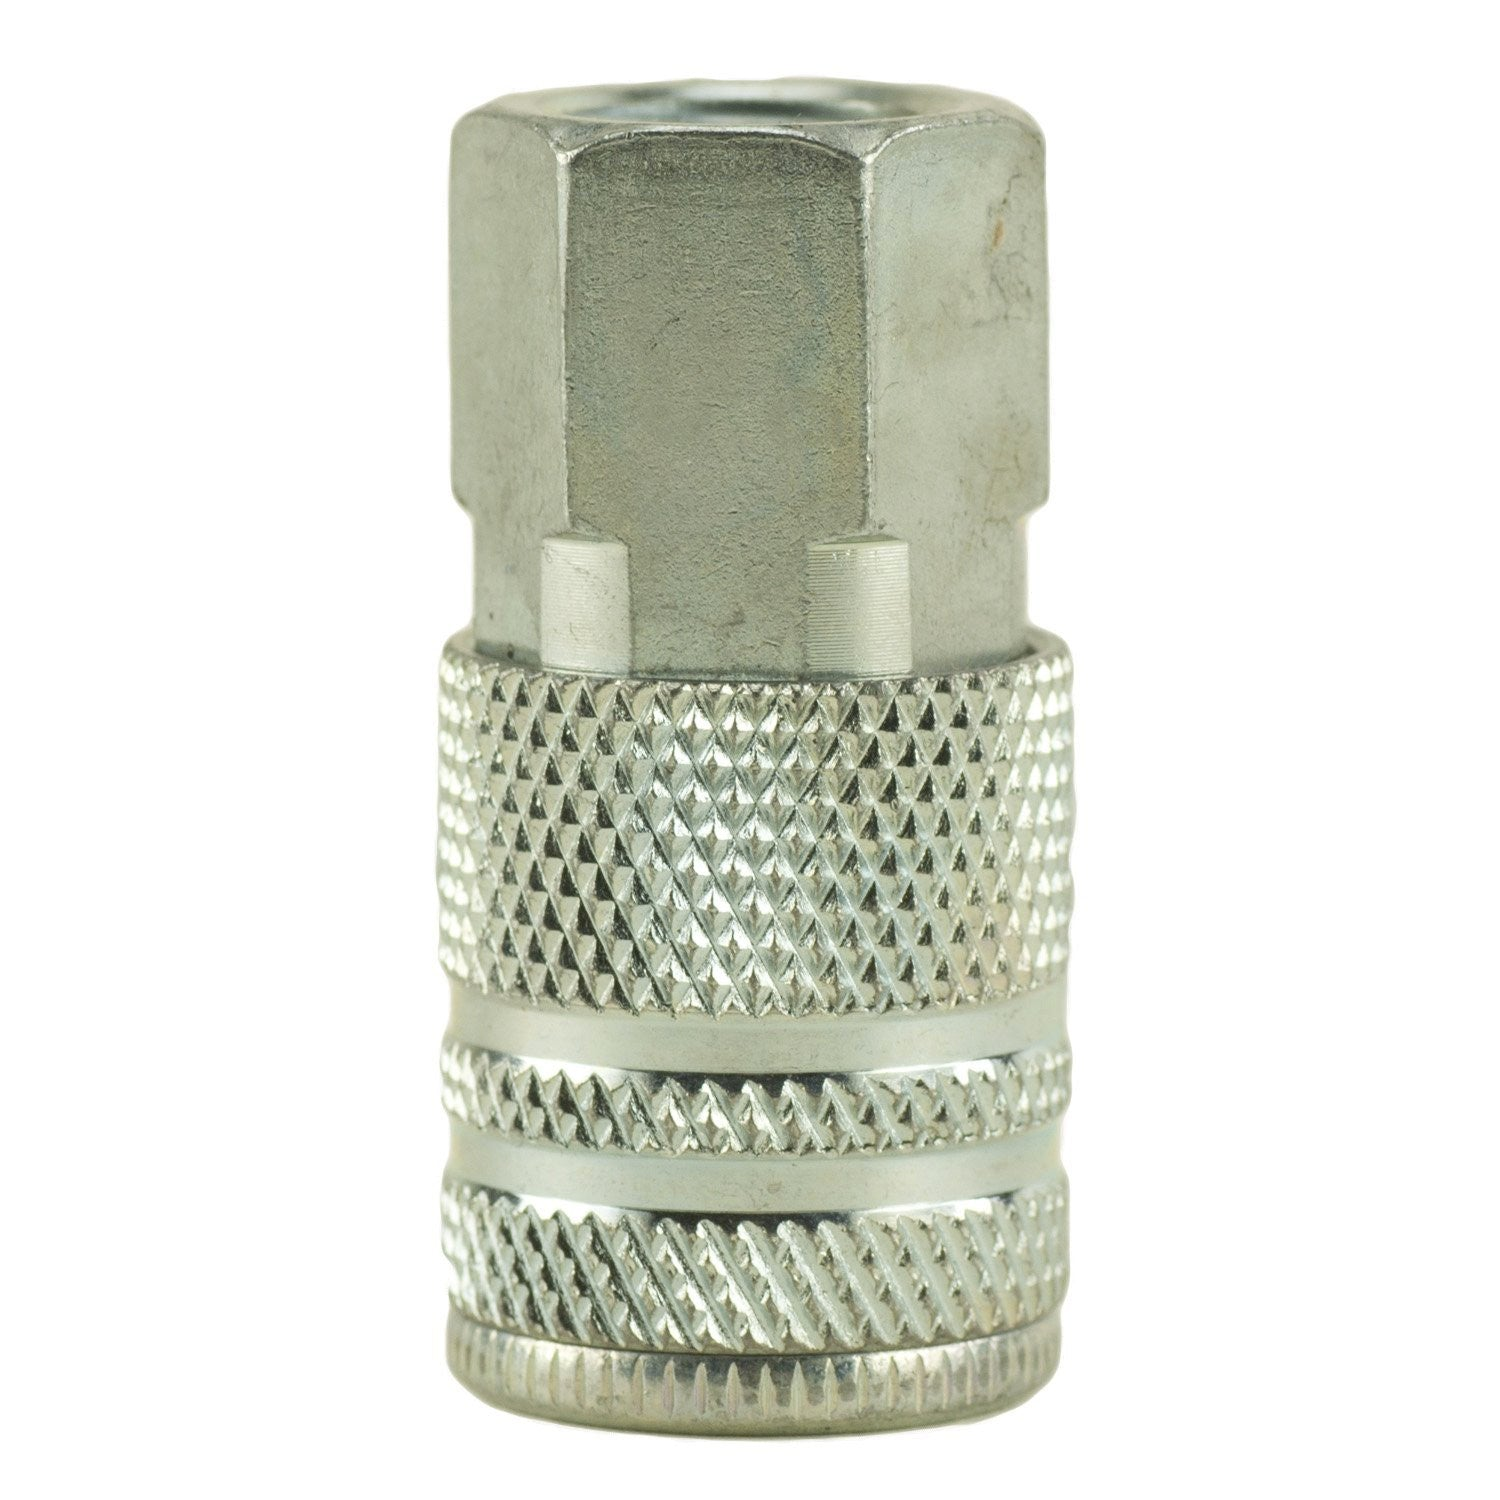 (1/4″) Industrial Female Coupler (CO-201)